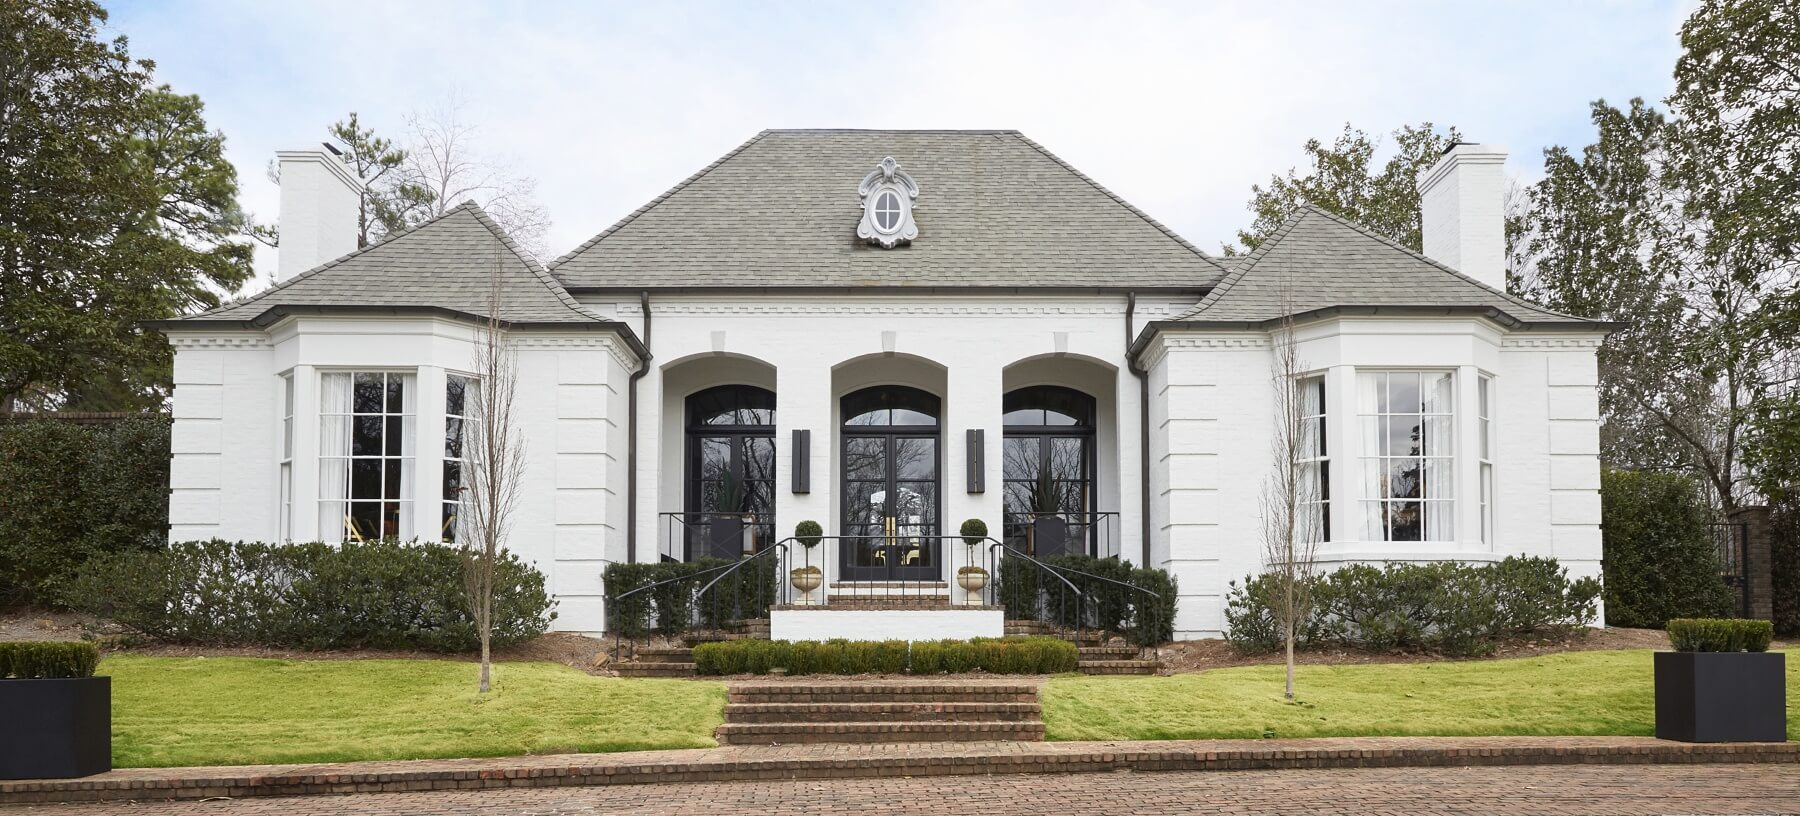 Em worked with Clarke Bohorfoush to streamline the landscaping and she painted the exterior white, in keeping with her original vision. Removing the color and overgrown greenery accentuated the facade's clean architectural lines and added dramatic emphasis to the three arched entryways.